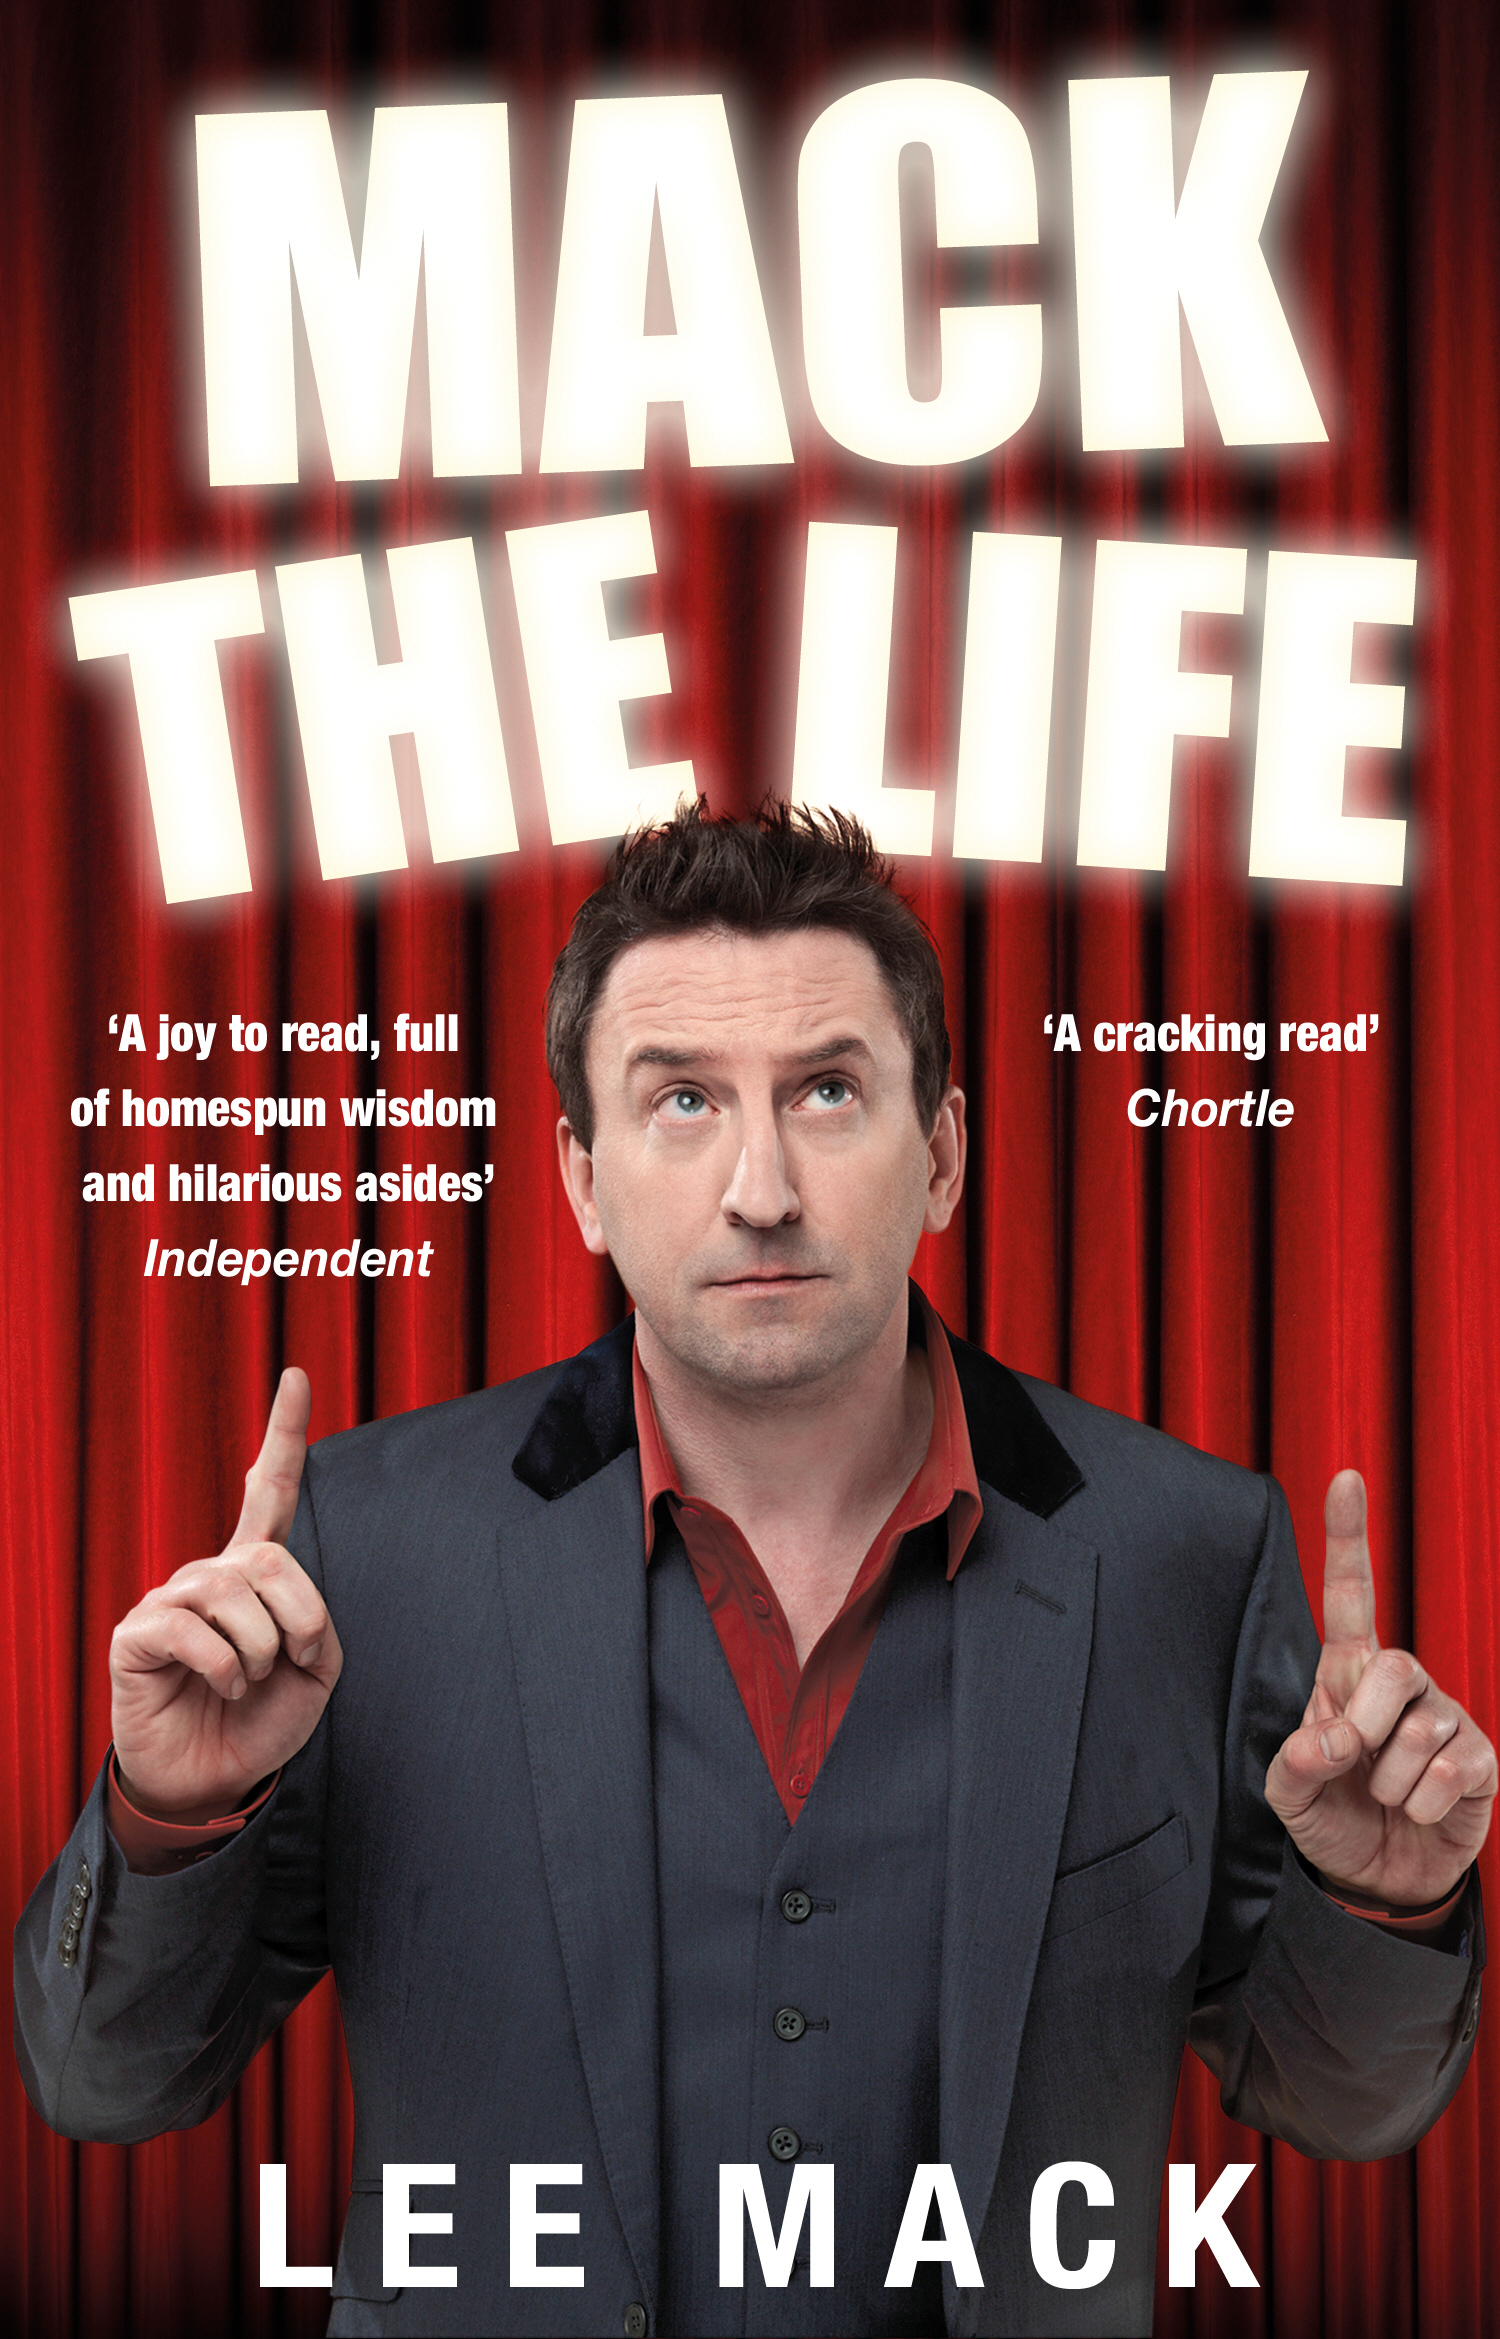 lee mack best lineslee mack wife, lee mack comedian, lee mack live, lee mack book, lee mack accent, lee mack keira knightley, lee mack going out, lee mack best lines, lee mack twitter, lee mack show, lee mack brother dead, lee mack stand up, lee mack world record, lee mack irish names